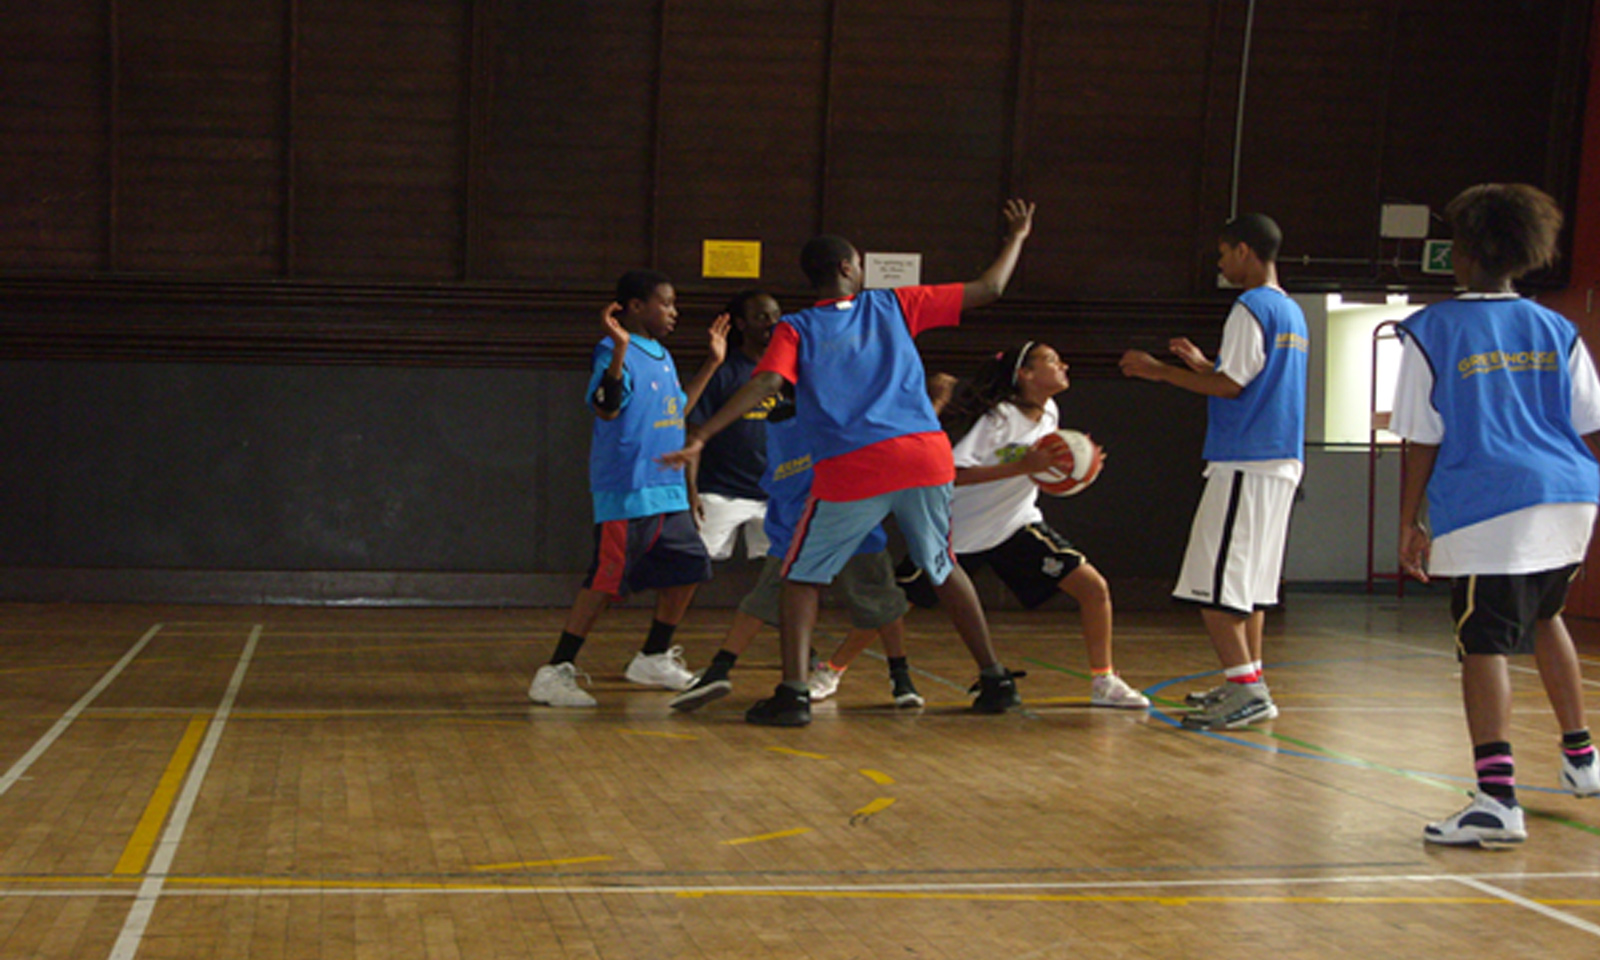 Basketball - Get dribbling with the coaches from M.B.S. Soul, a community-based organisation that uses basketball to help improve fitness in the community.